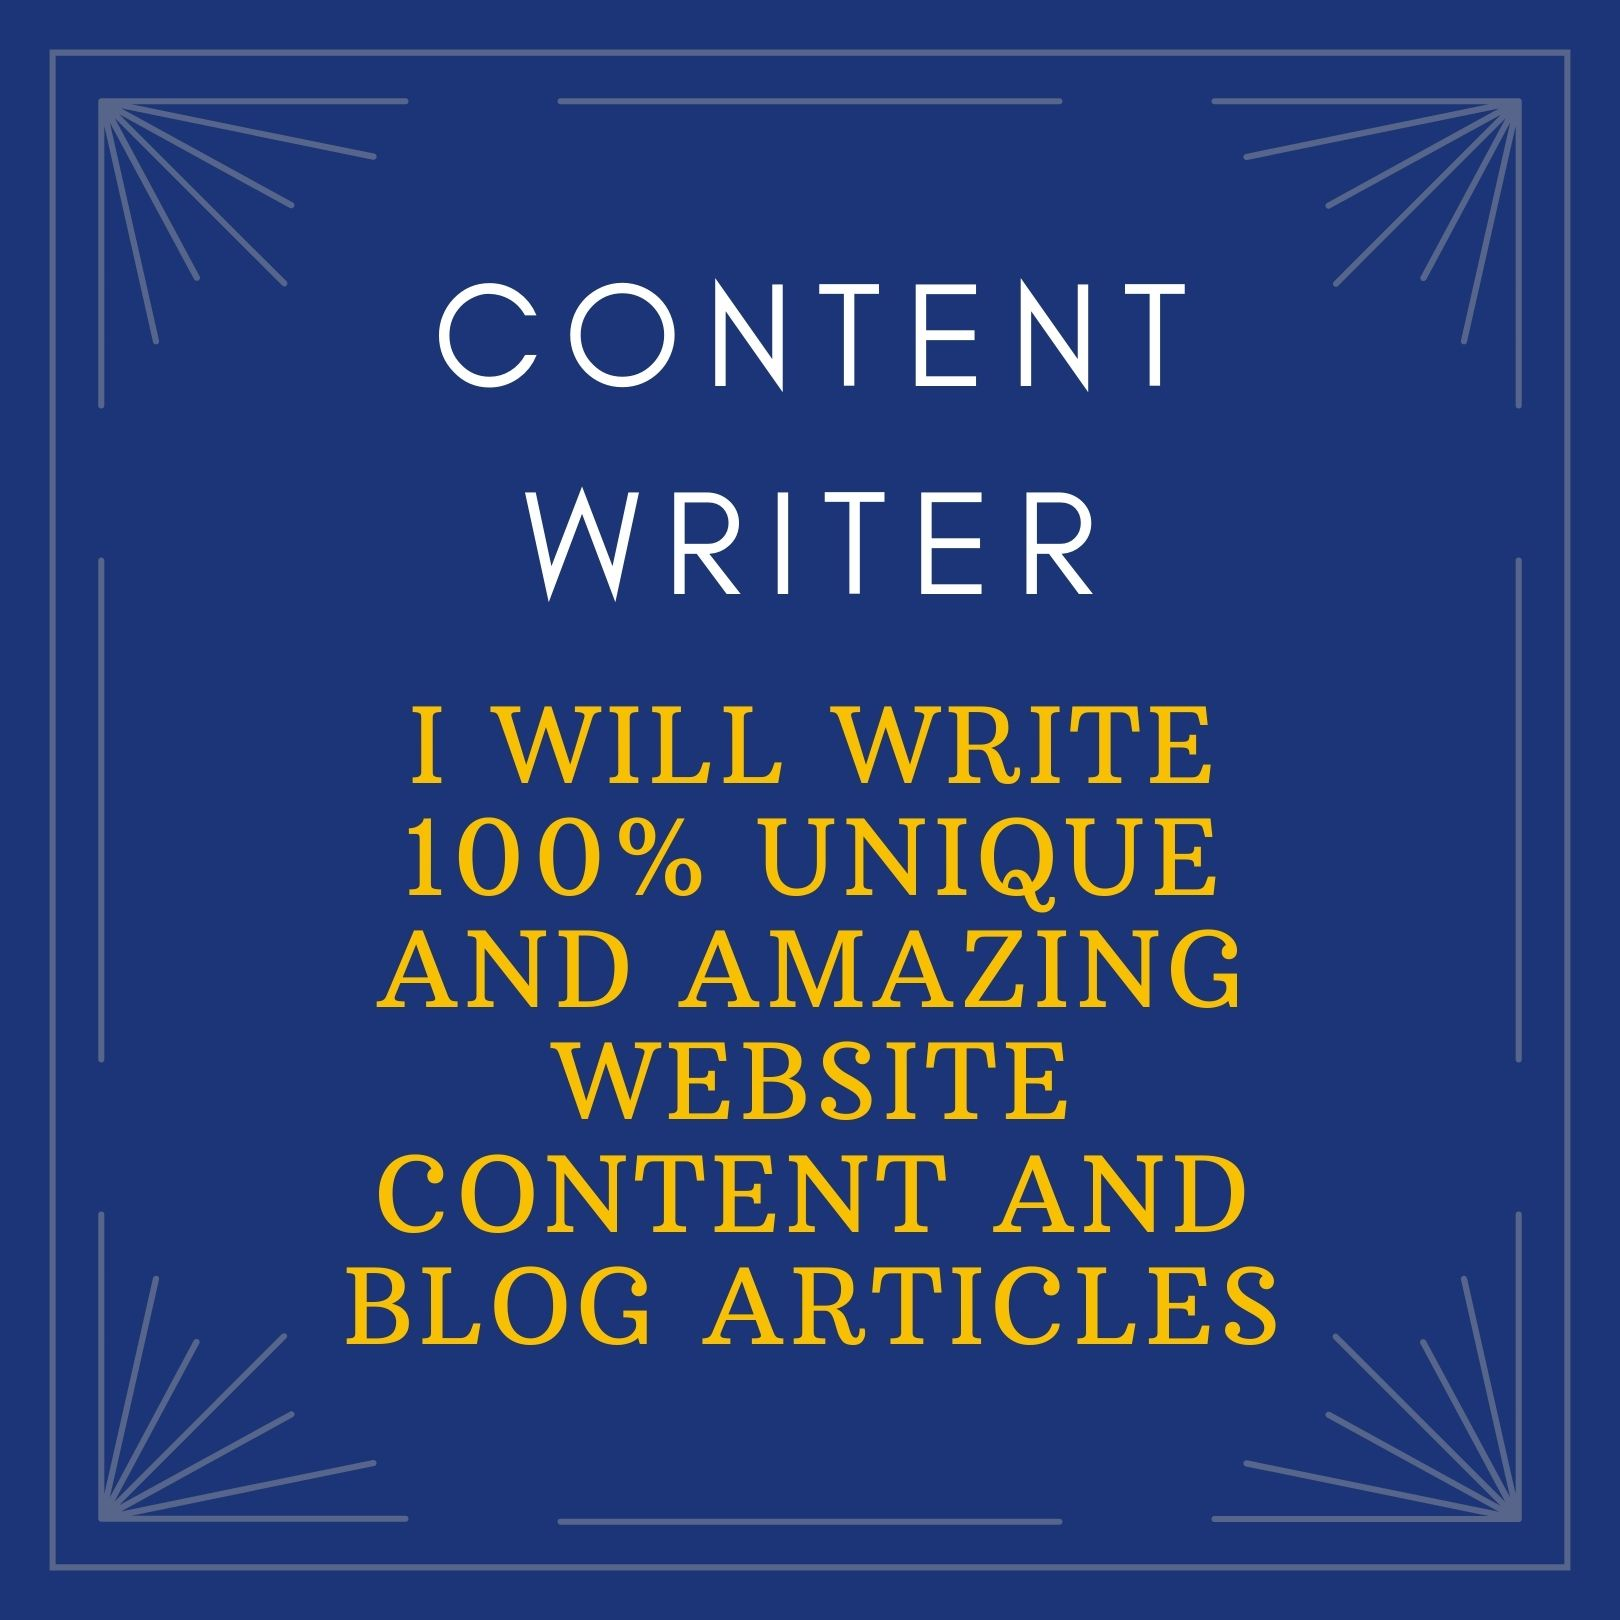 I will write 500-1000 words unique and amazing website content and blog articles